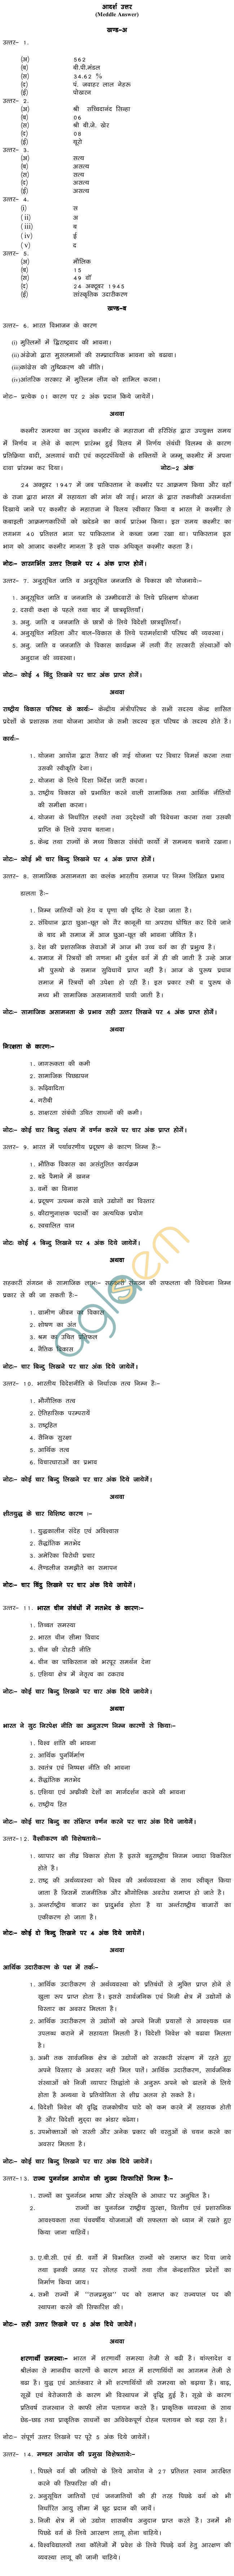 MP Board Class XII Political Science Model Questions & Answers - Set 1